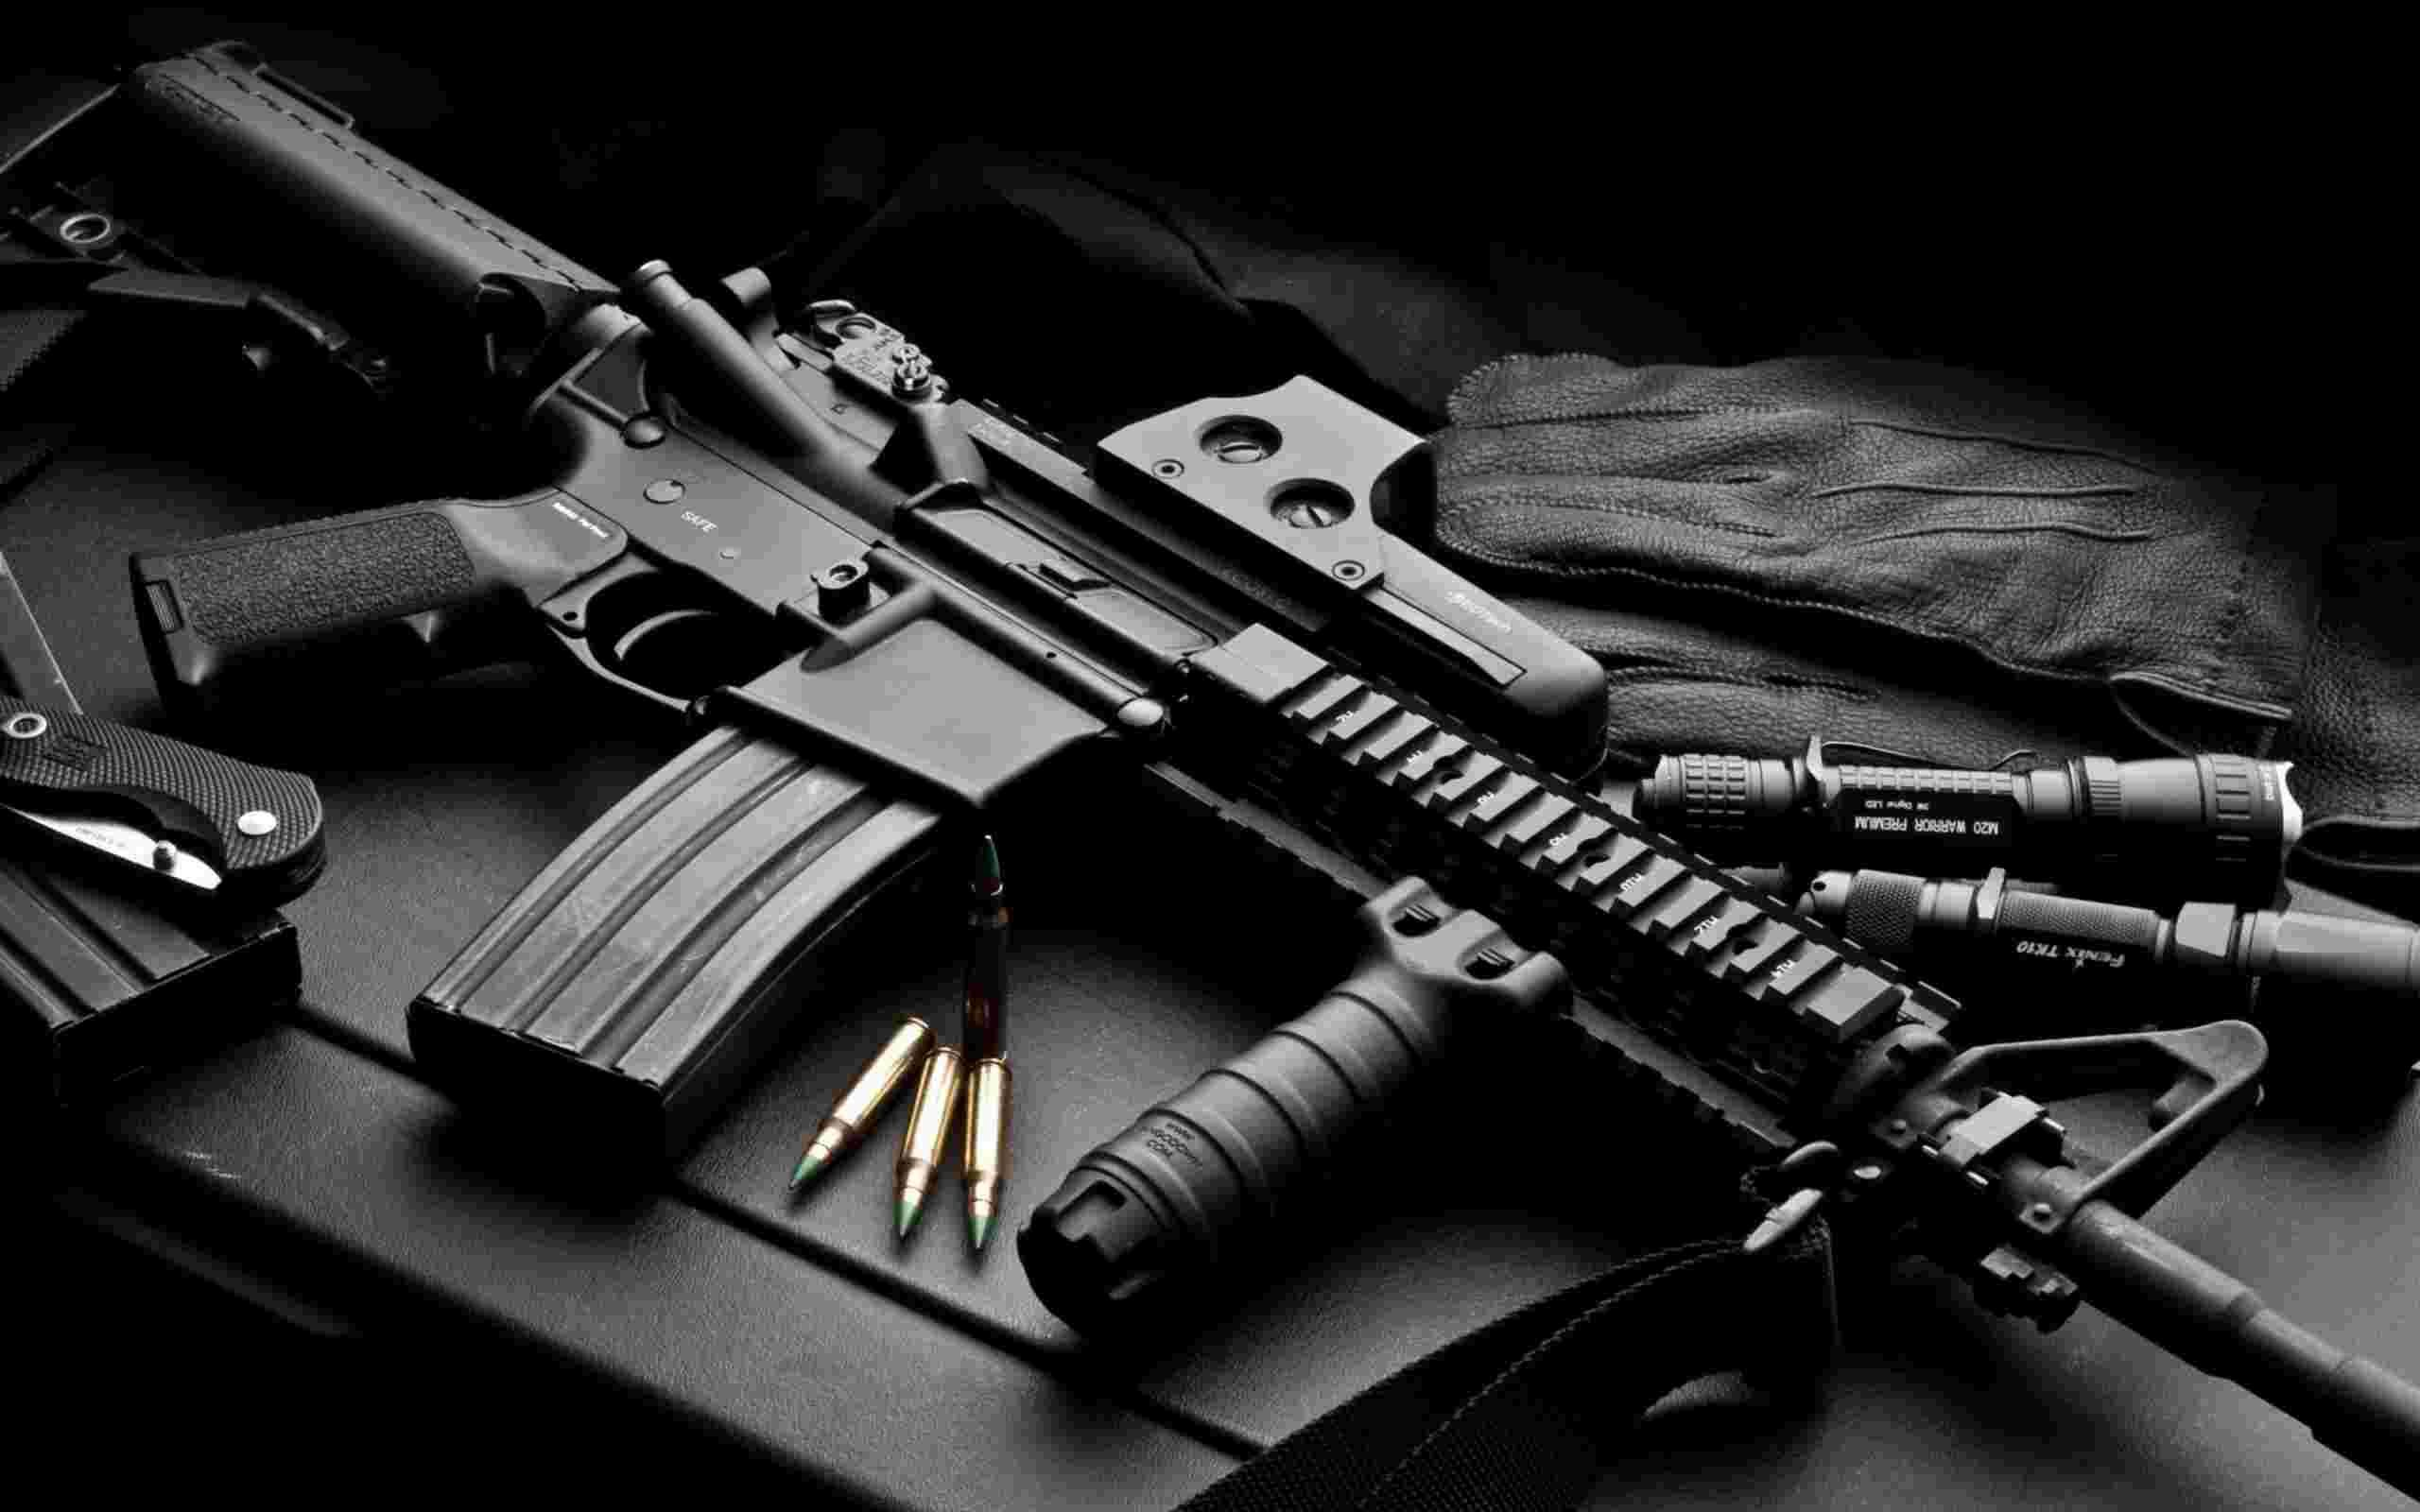 108 Best Images About Weapons Wallpapers On Pinterest: M4A1 Carbine Wallpaper HD